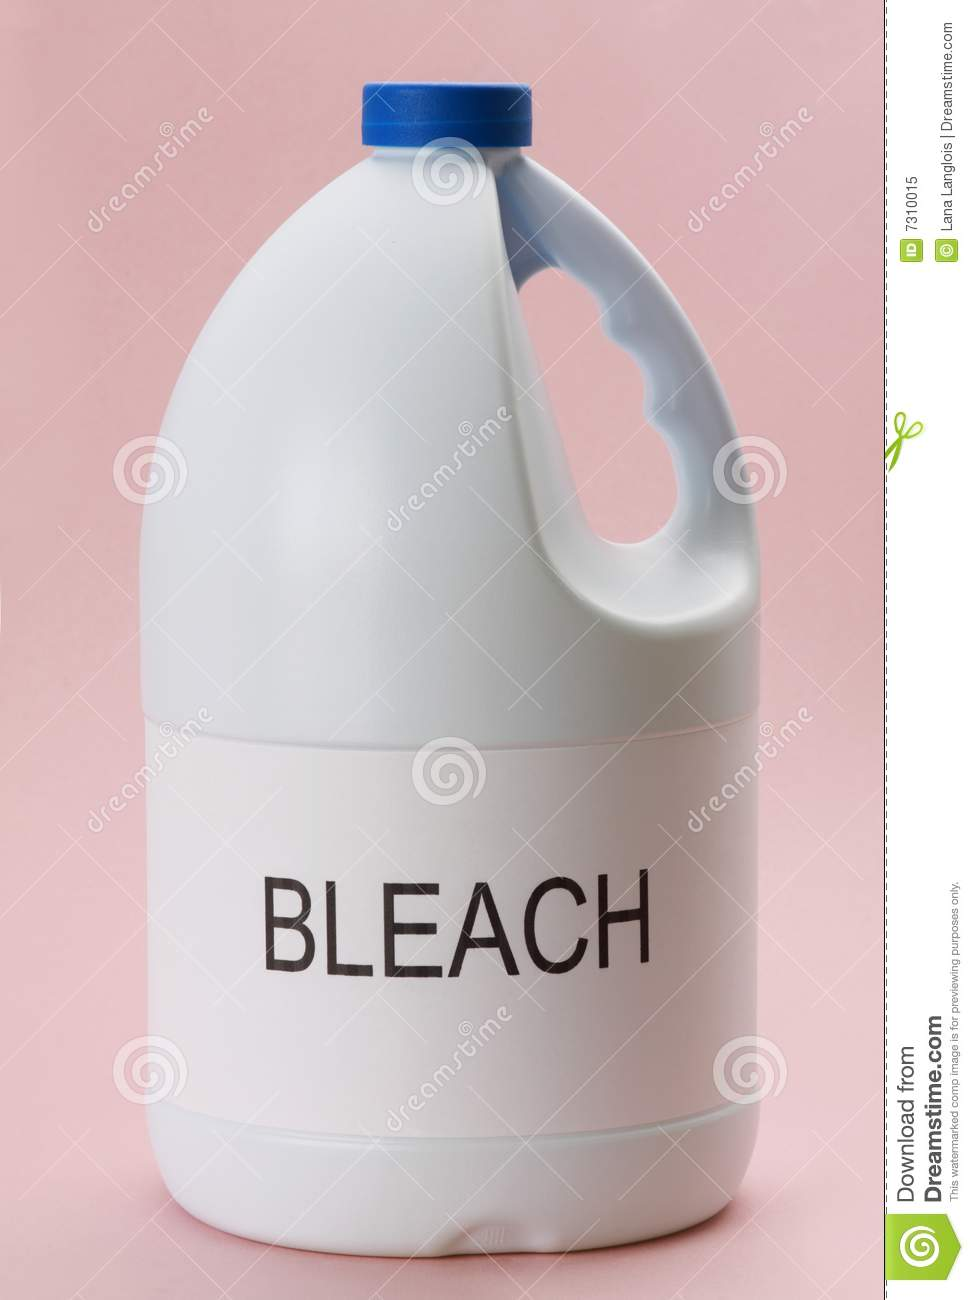 Laundry Bleach Stock Image Image Of Liquid Bottle